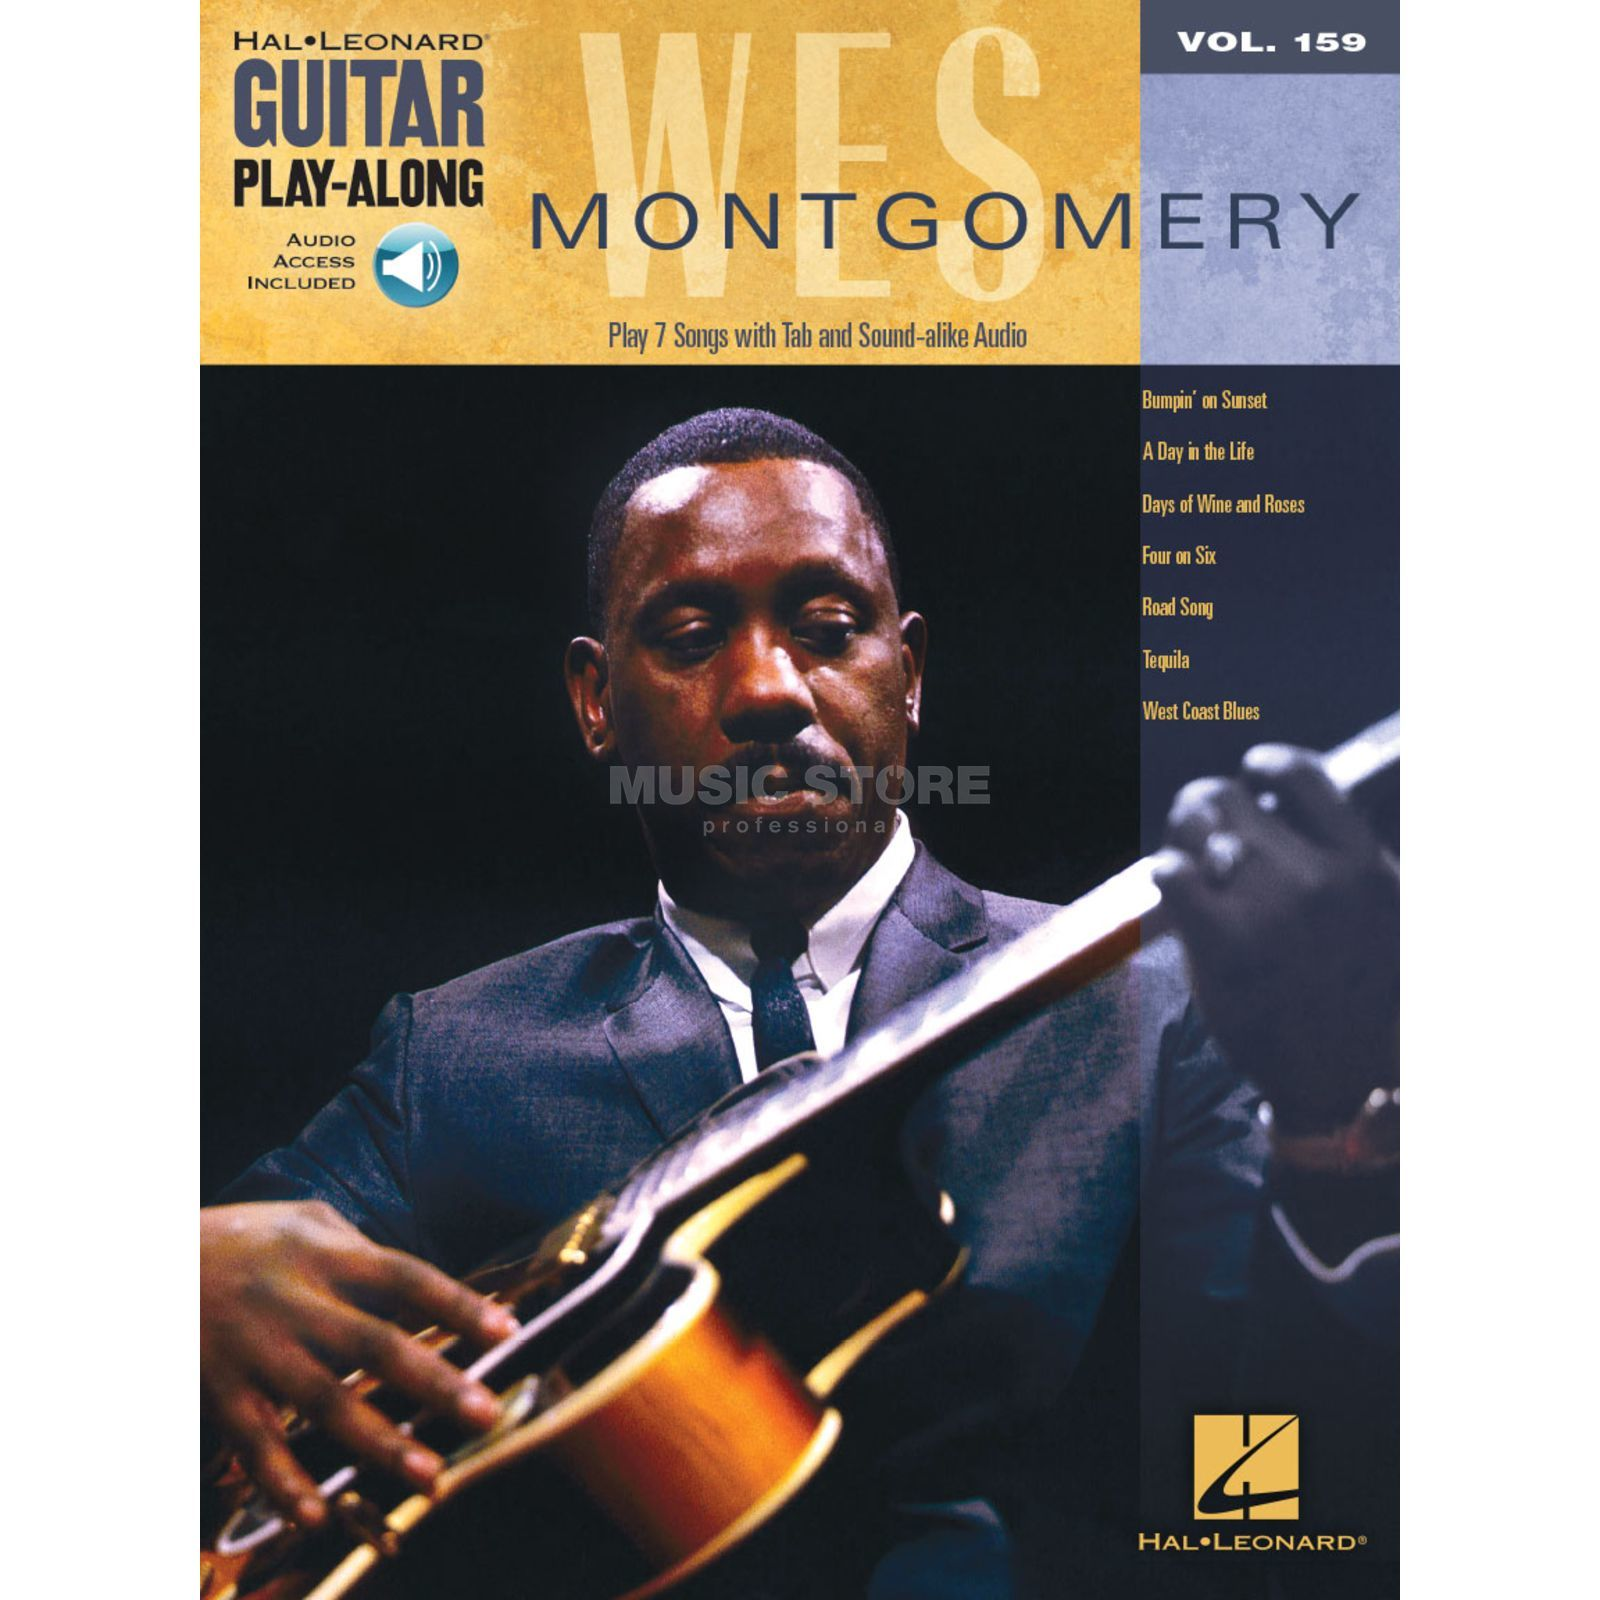 Hal Leonard Guitar Play-Along: Wes Montgomery Vol. 159, TAB und Download Produktbillede